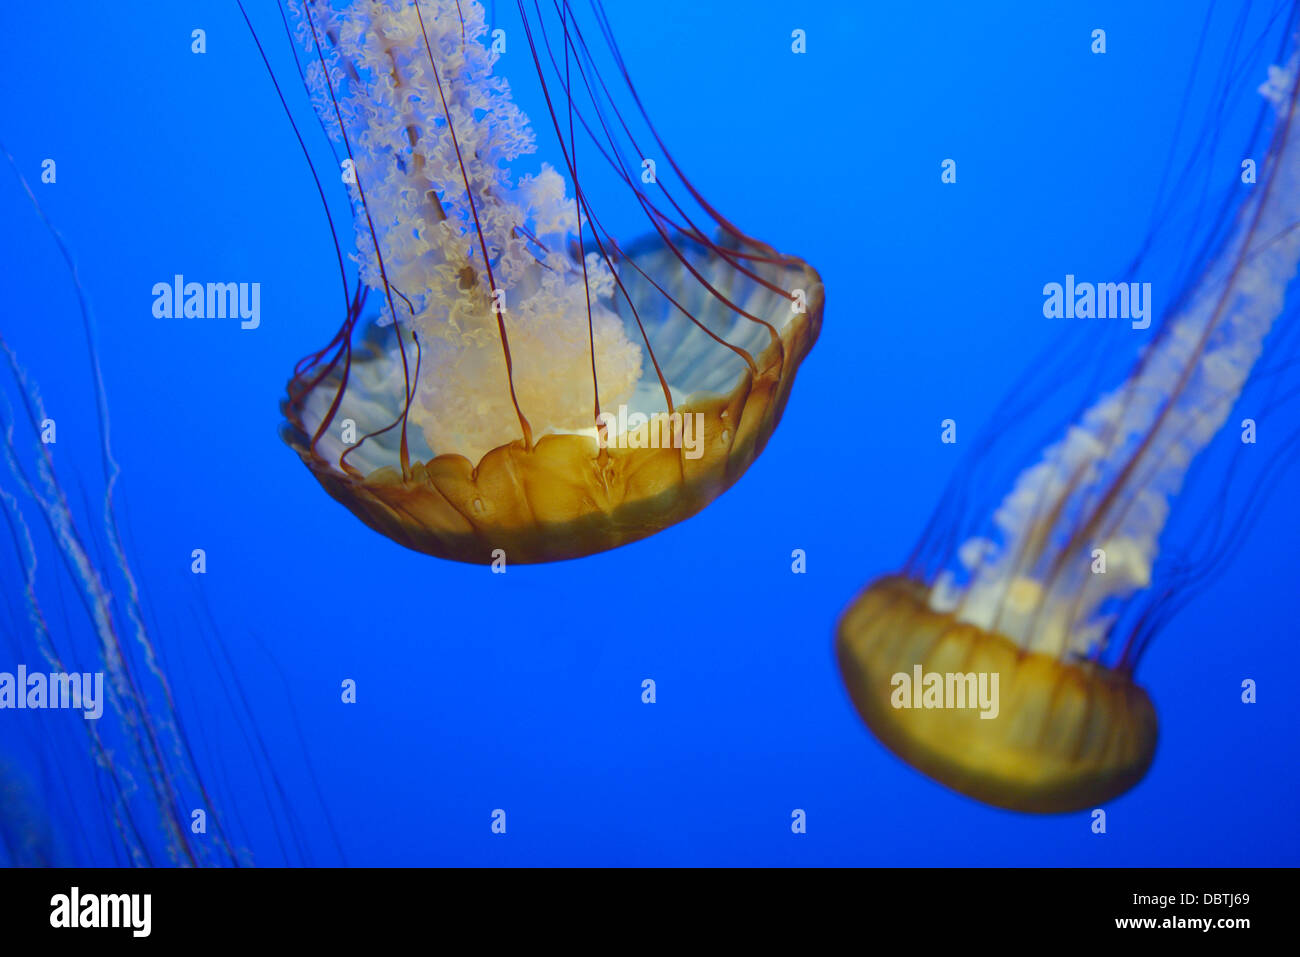 Pacific sea nettles, Chrysaora fuscescens, also known as West Coast nettles, native to the eastern Pacific Ocean. - Stock Image